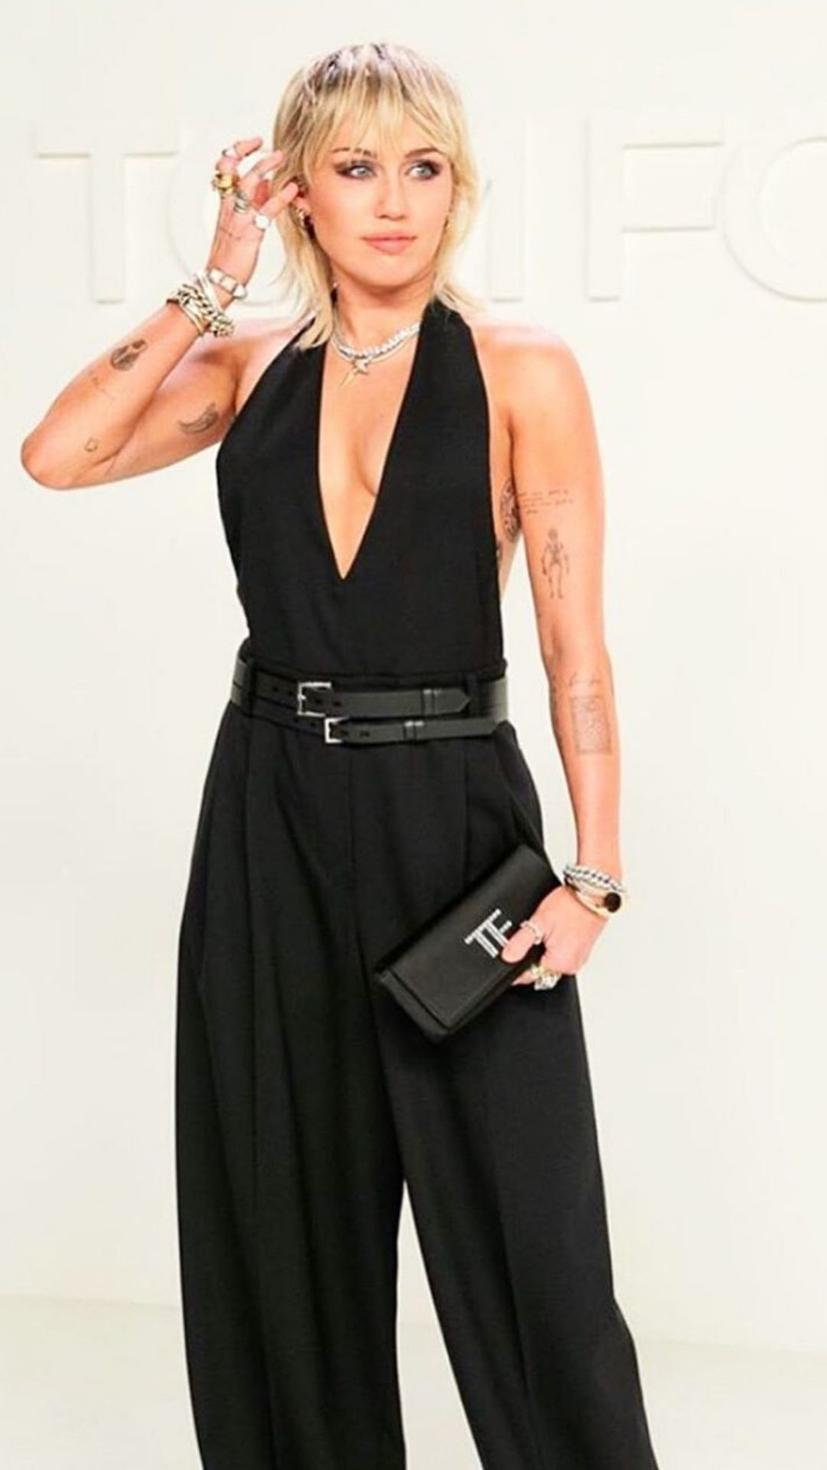 Miley Cyrus at the Tom Ford show wearing  jumpsuit and clutch from the brand